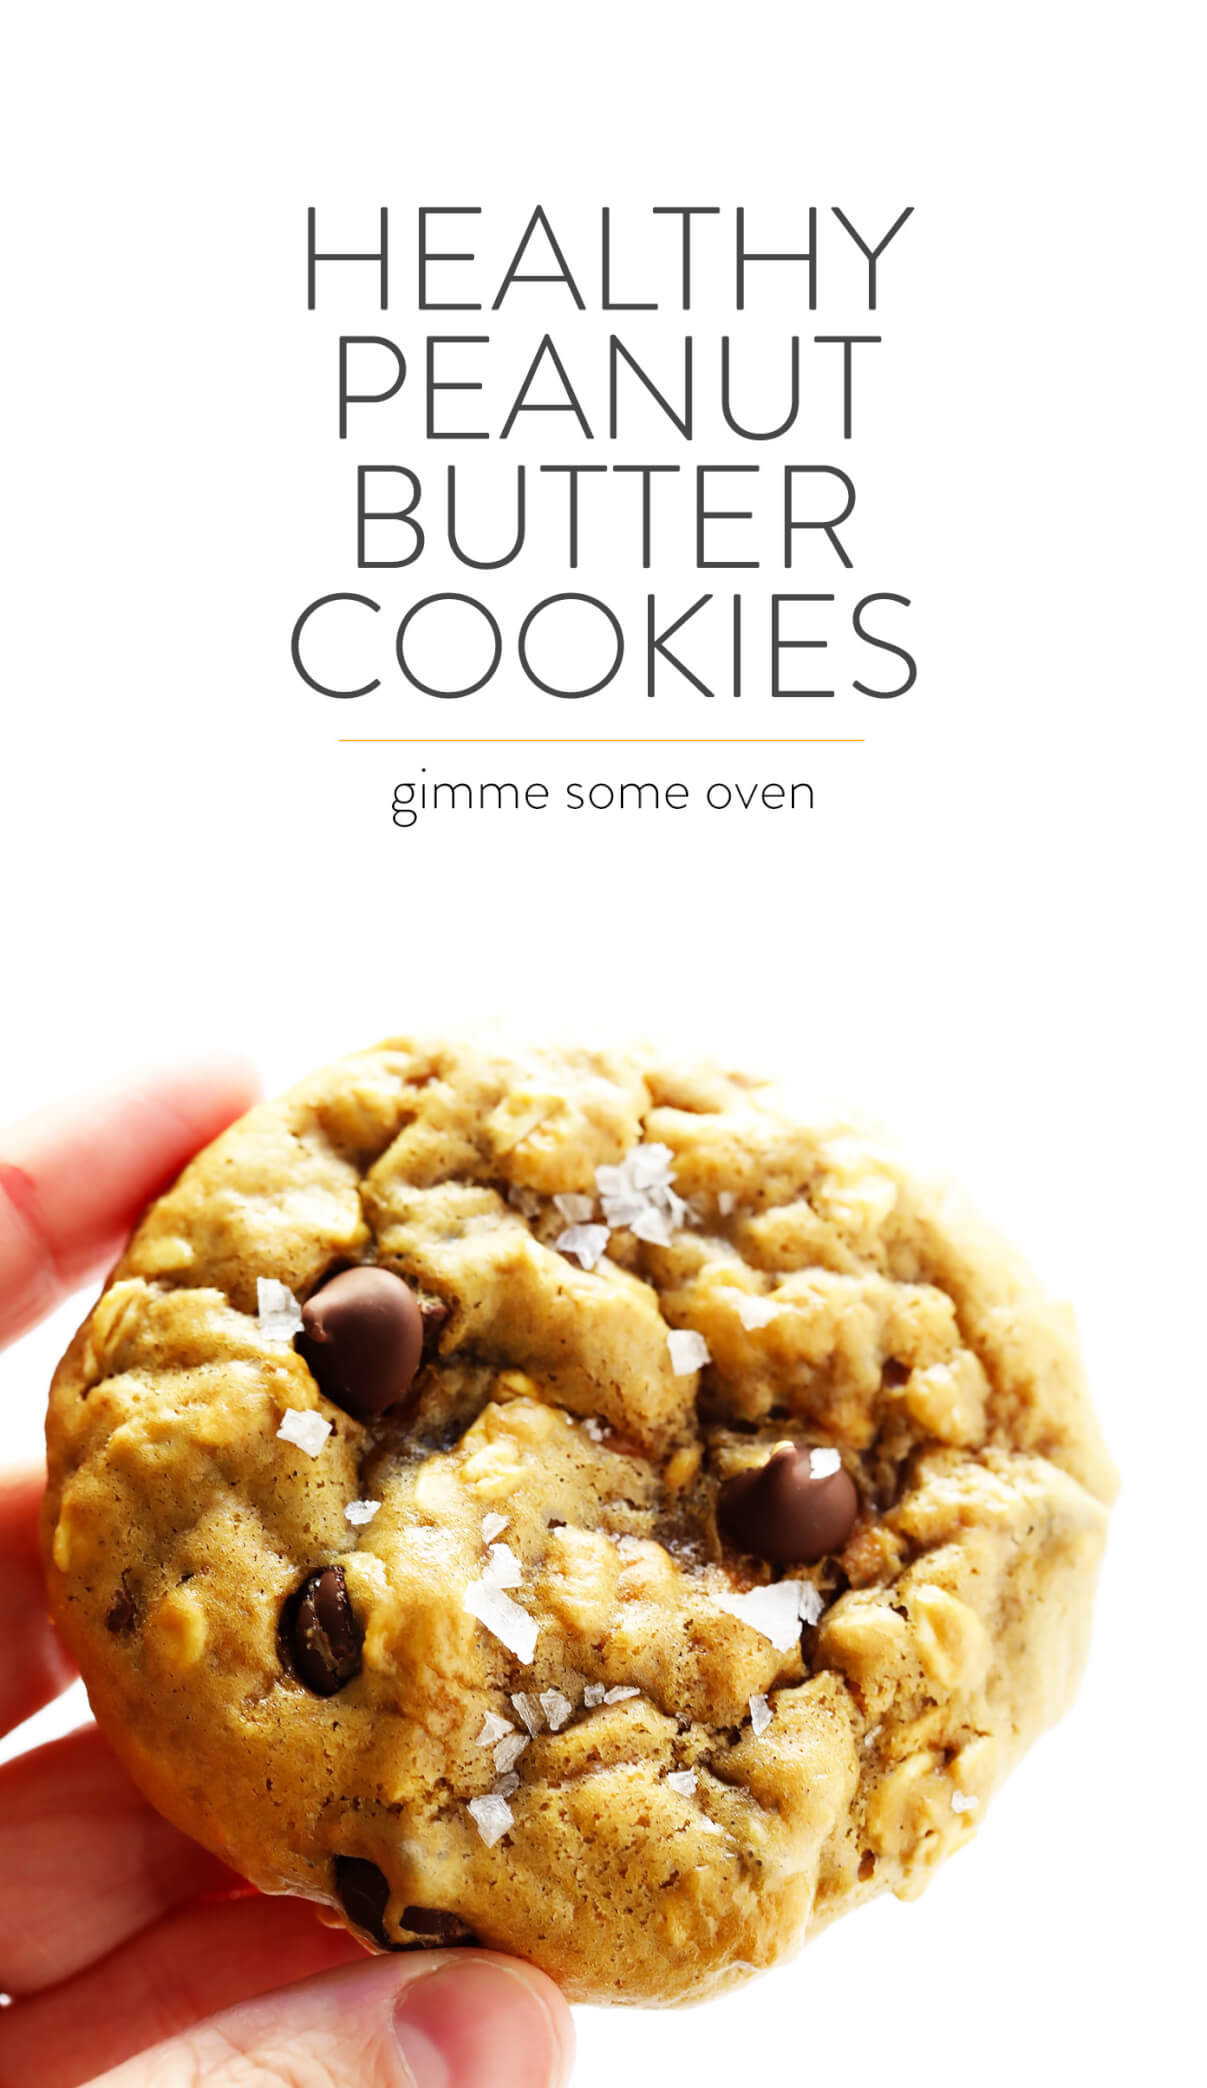 Are Peanut Butter Cookies Healthy  Healthy Peanut Butter Cookies